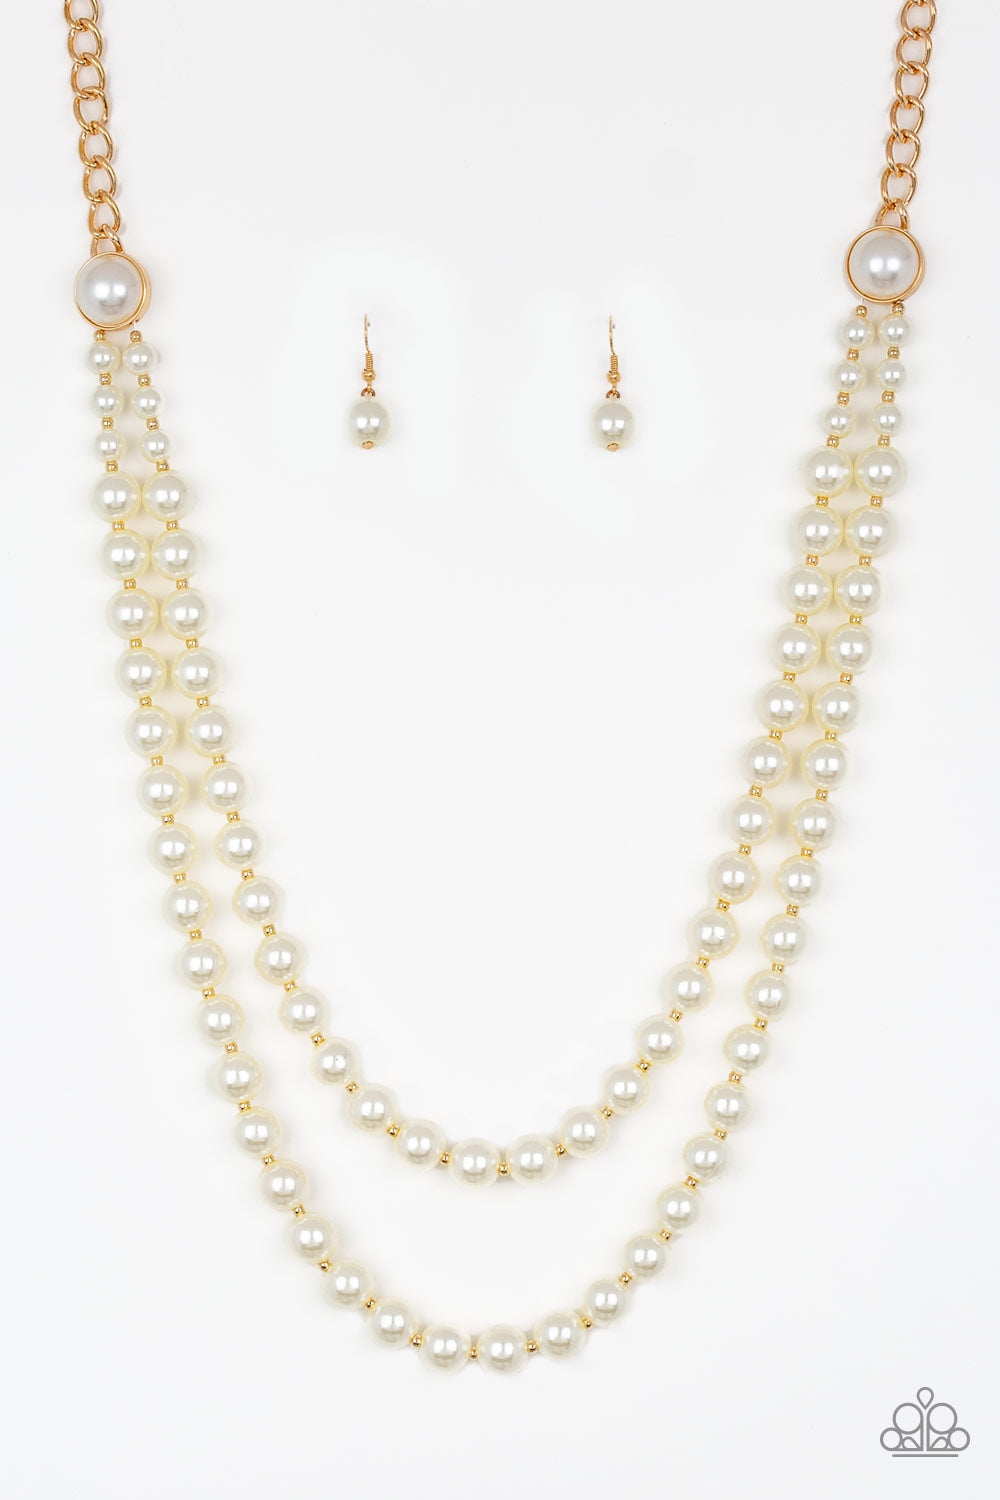 Paparazzi Necklace - Endless Elegance - Gold